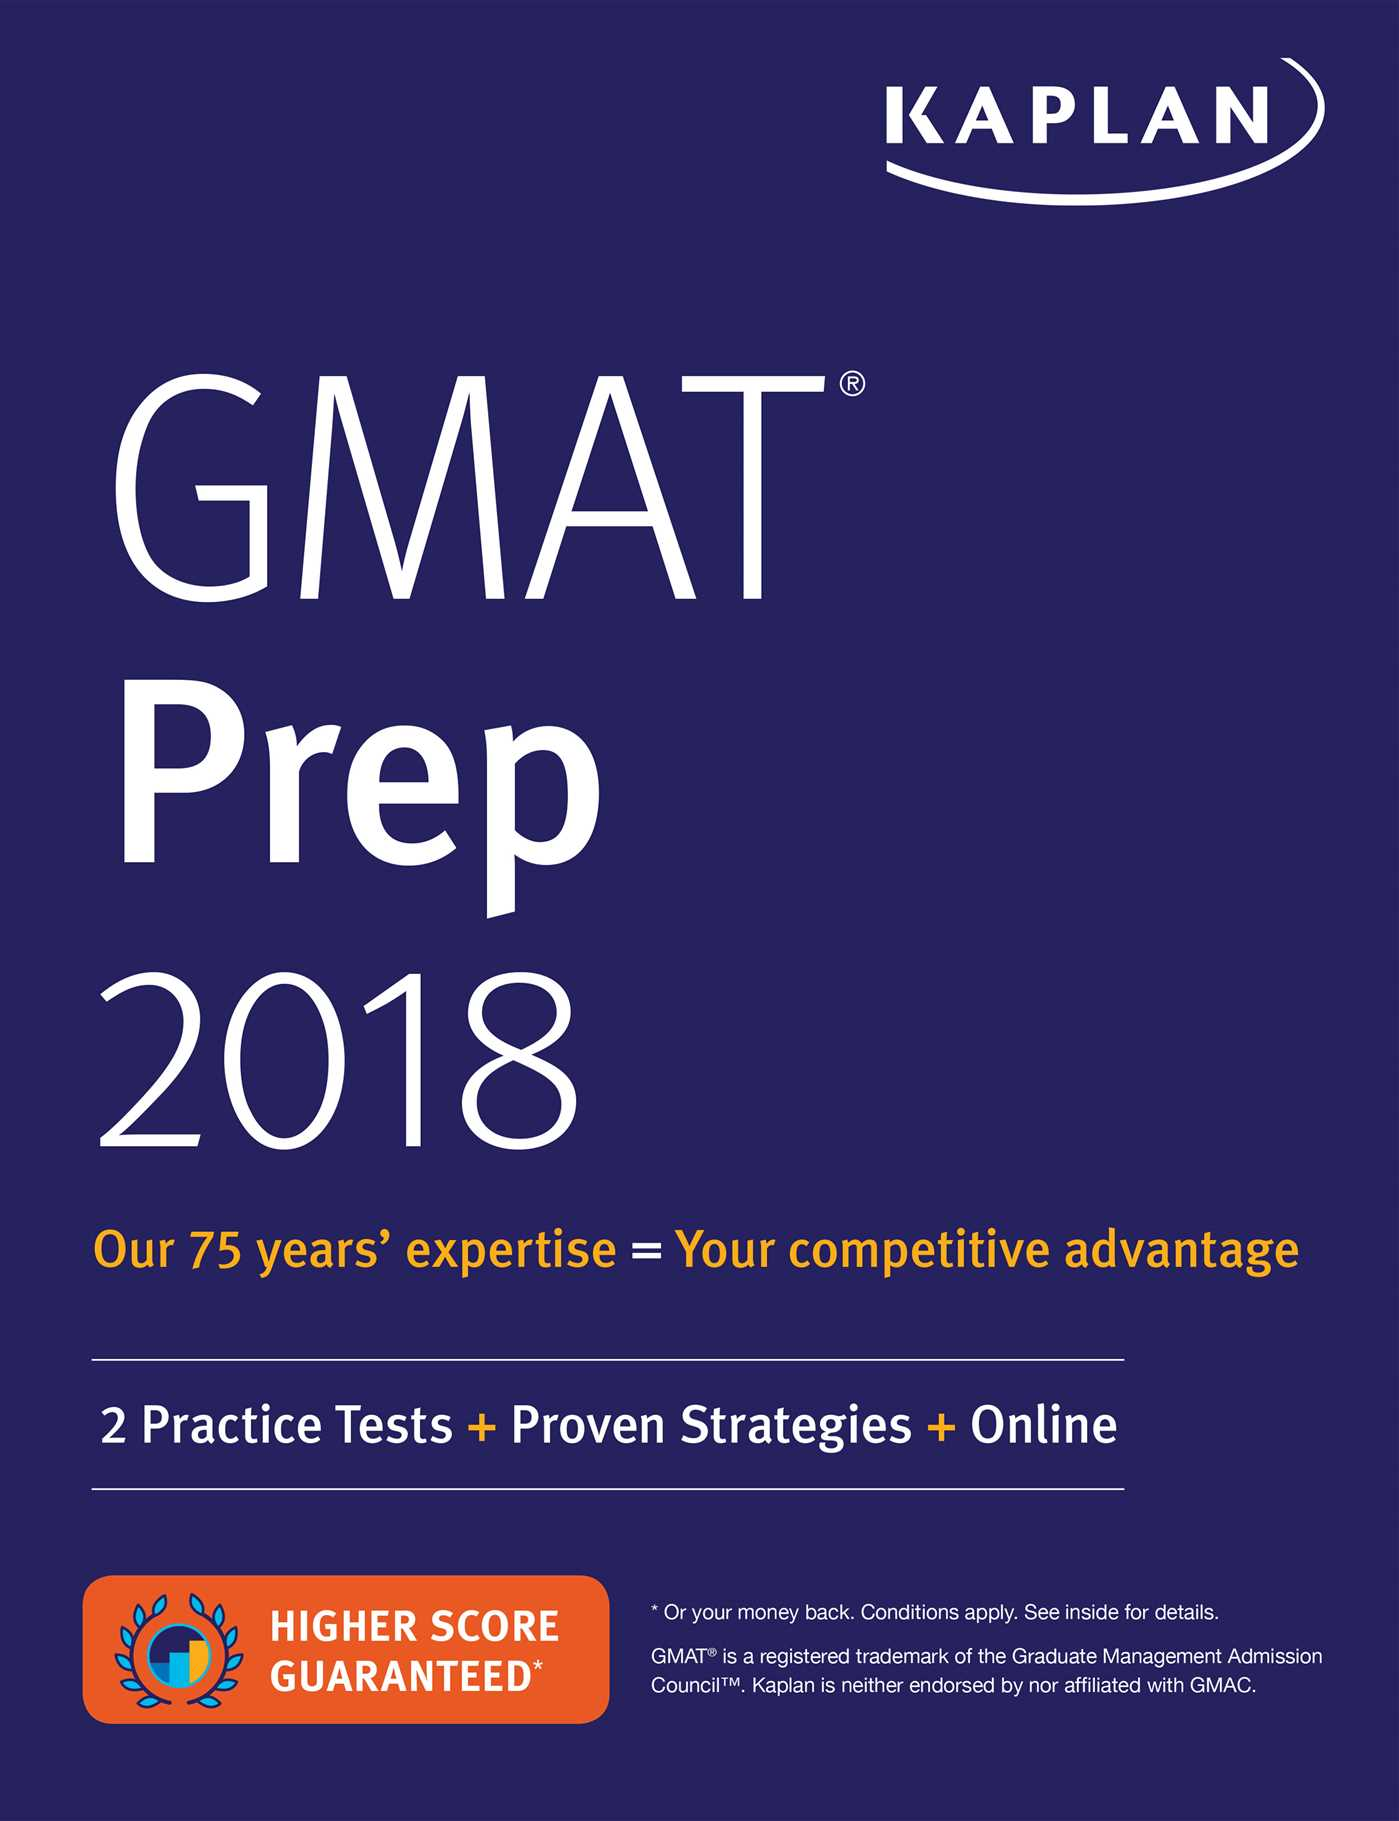 gmat essay prep books The best gmat course, with free gmat tests, preparation tips, and sample gmat essays gmat tutoring, questions, blog, and forum downloads, lessons, tests, and tutorials.